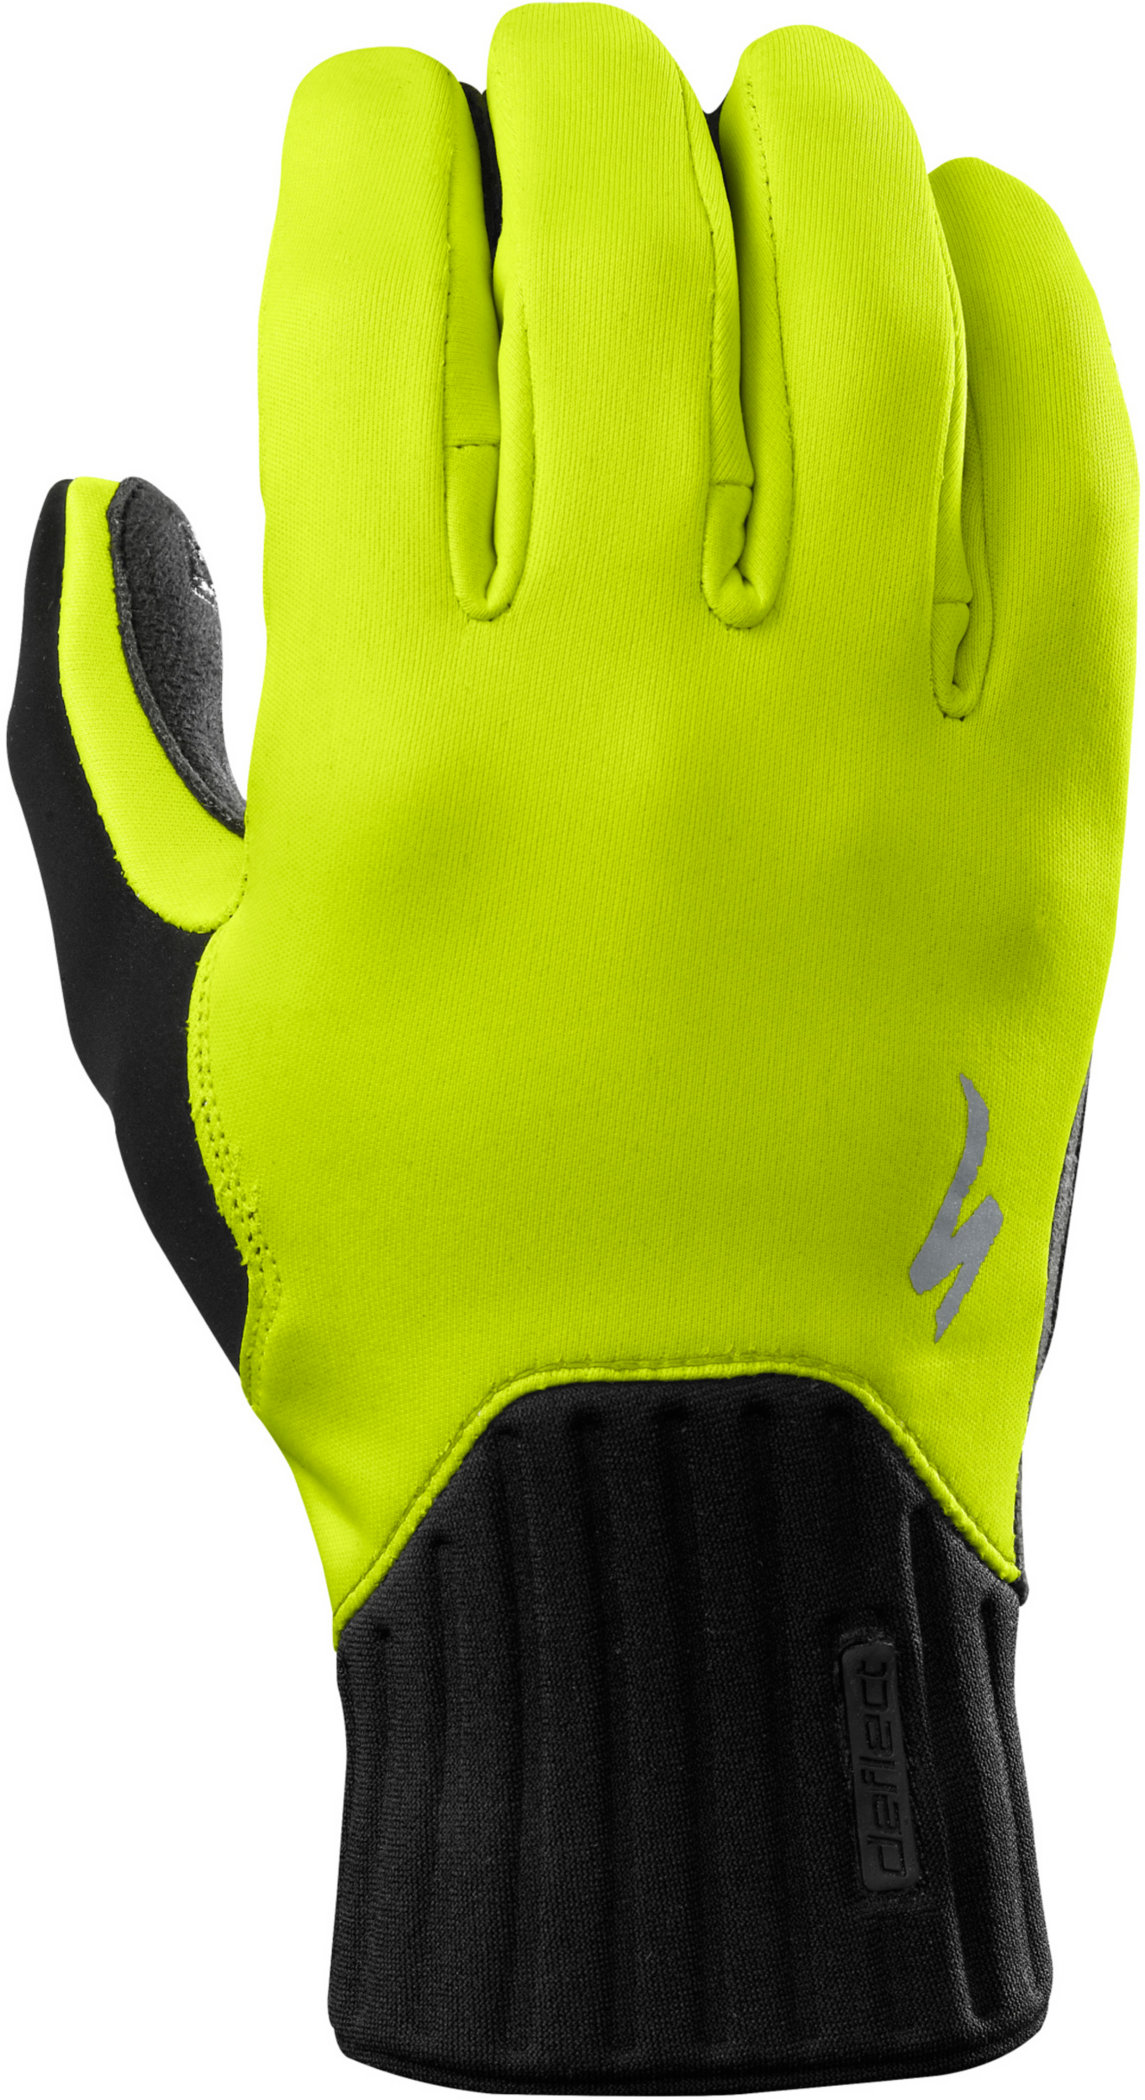 Specialized Deflect Gloves Neon Yellow X-Large - Alpha Bikes